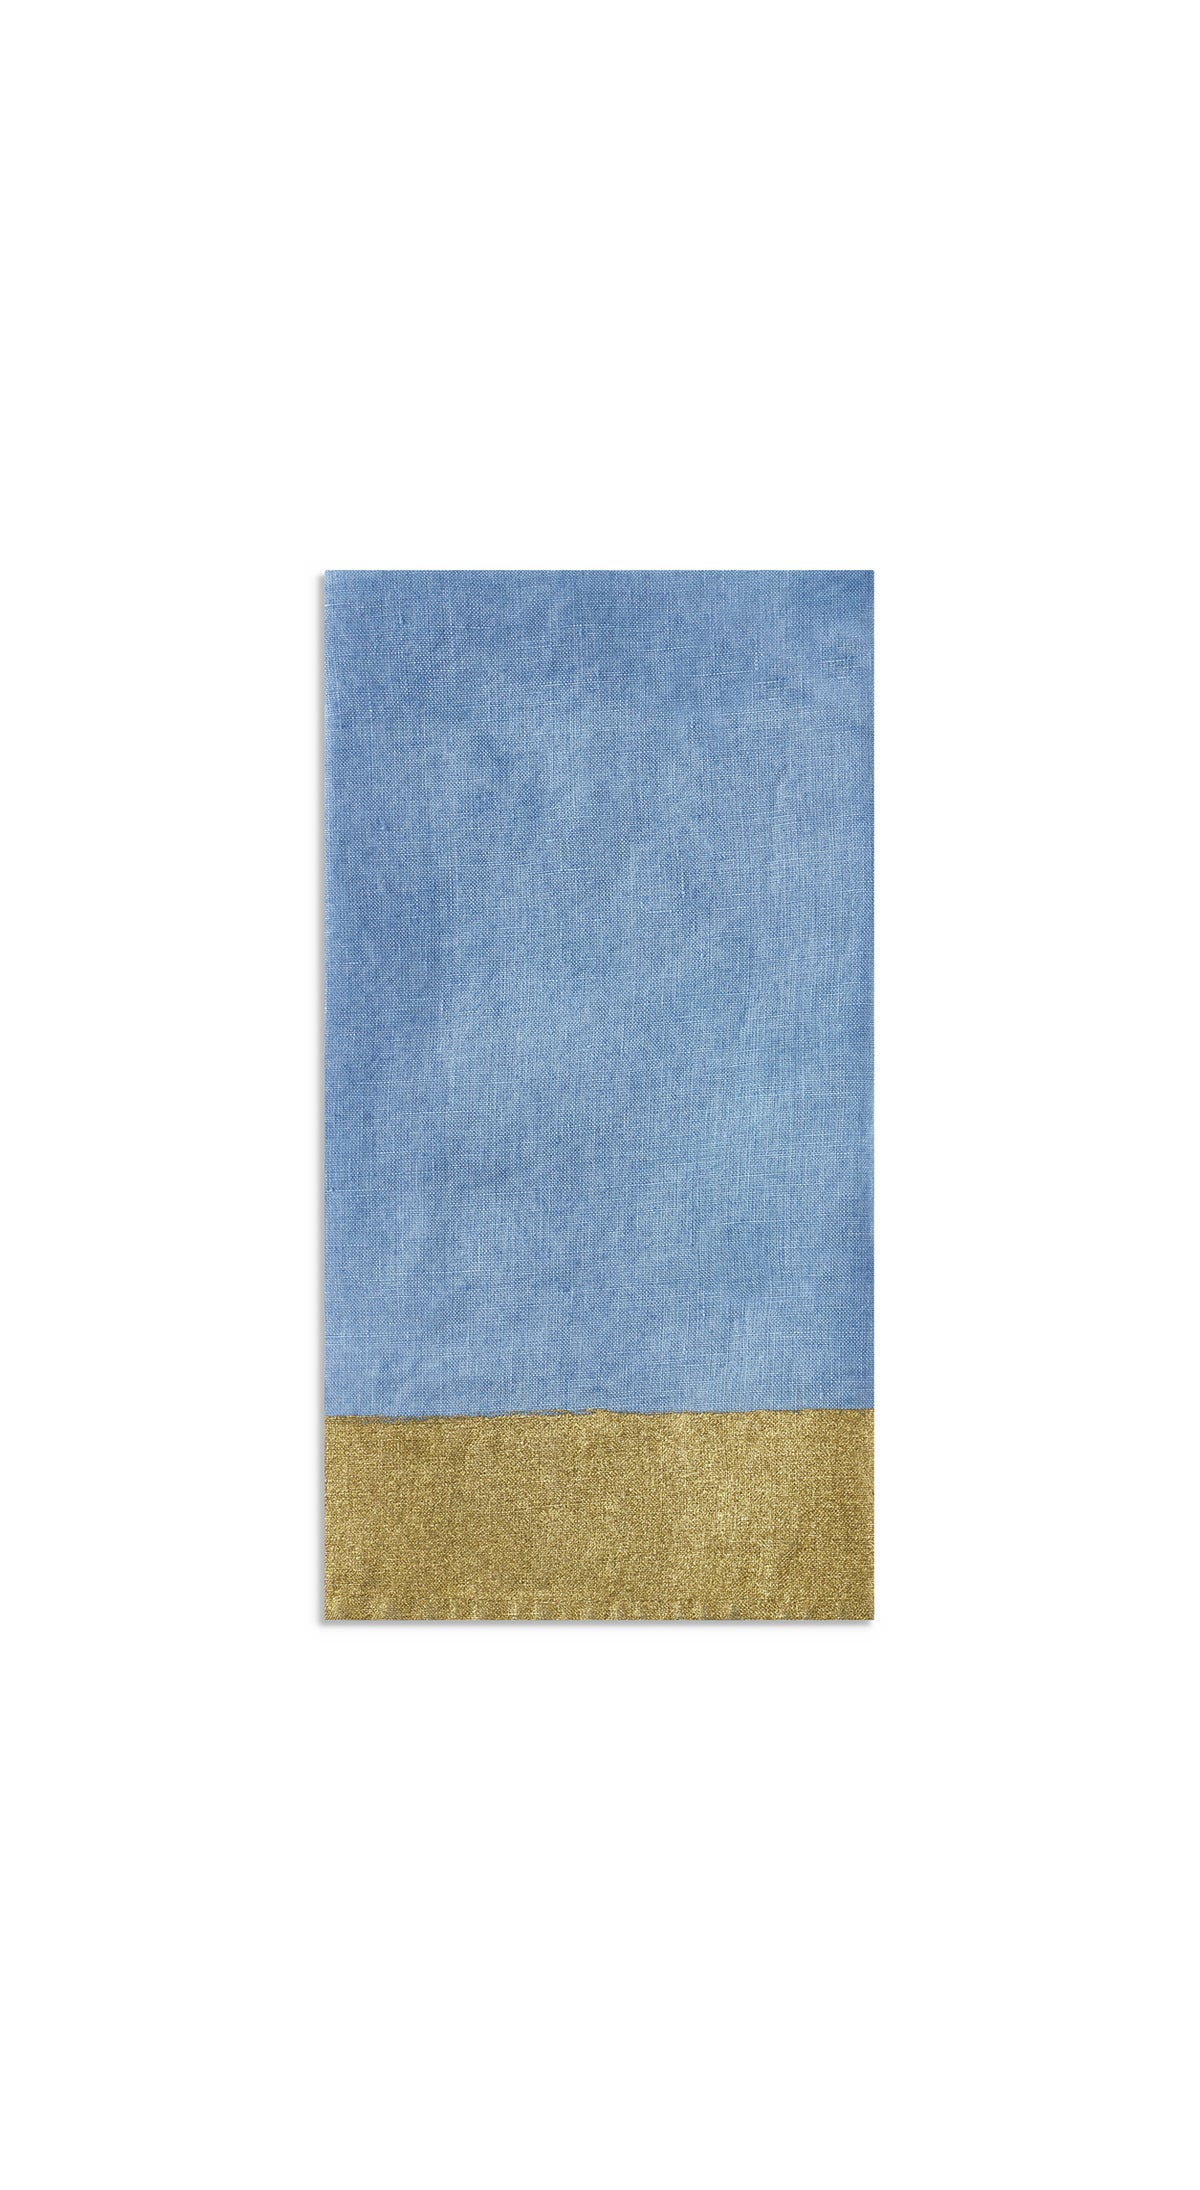 Gold Edge Linen Napkin in Pale Blue